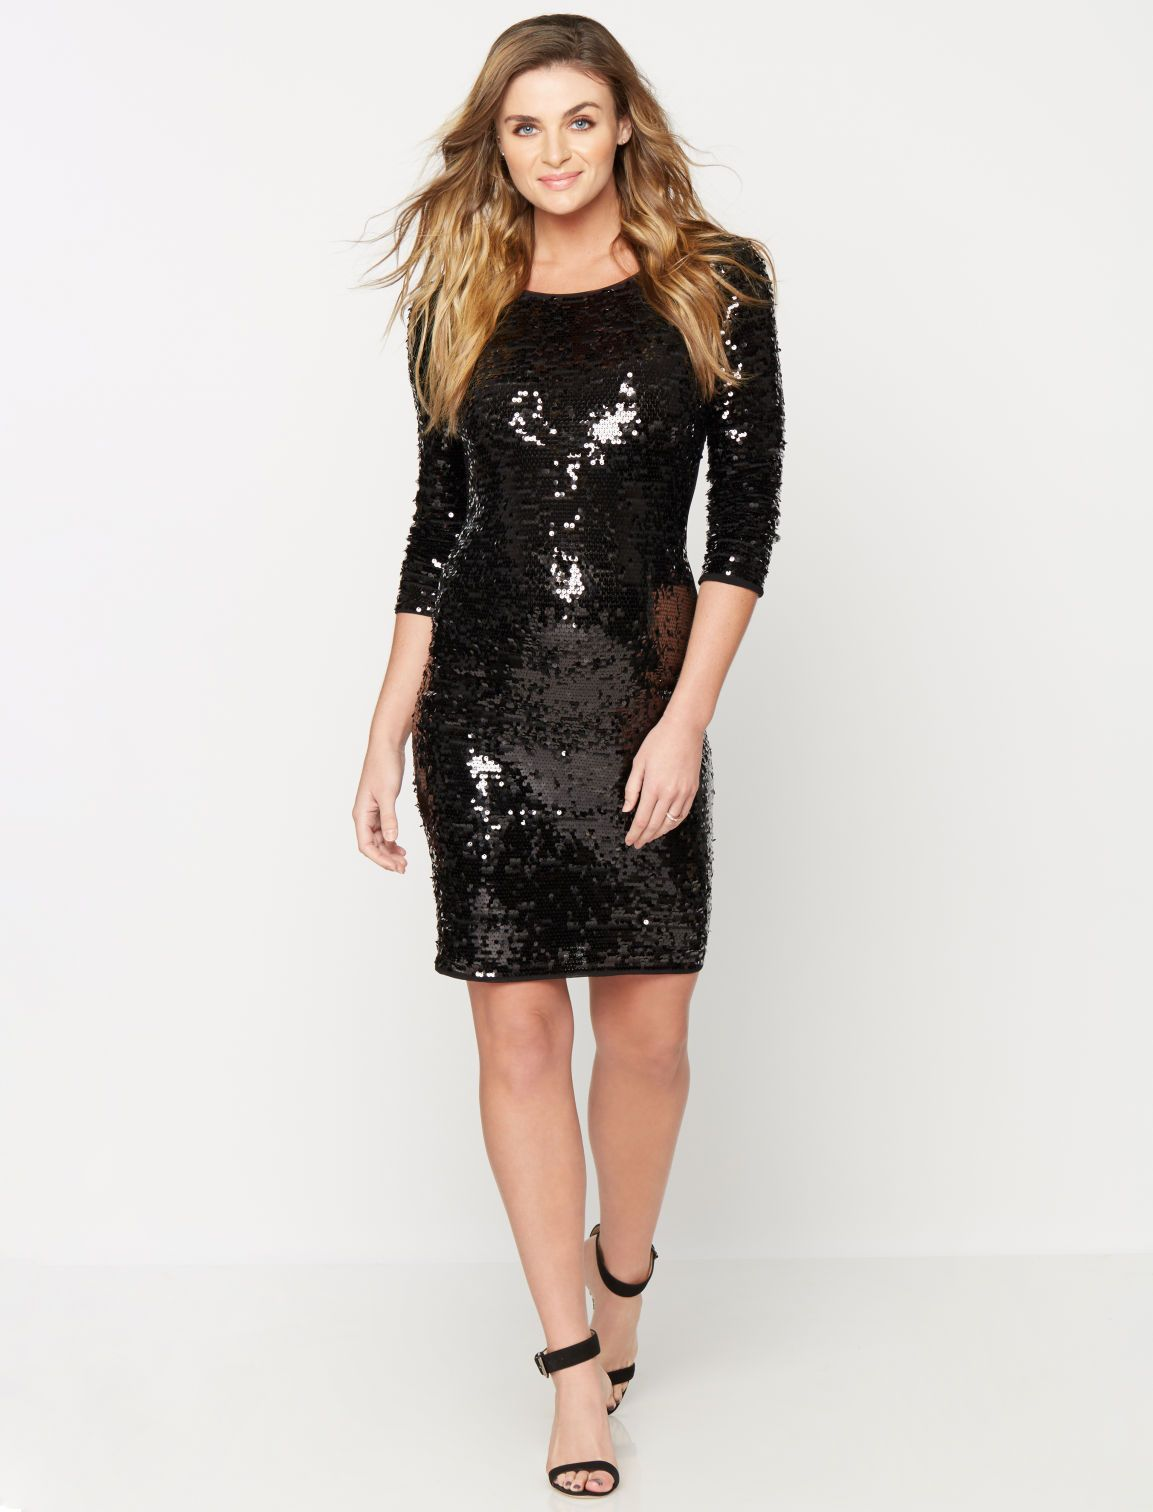 Showstopper style 34 sleeve sequin maternity dress by laundry showstopper style 34 sleeve sequin maternity dress by laundry by shelli segal available ombrellifo Gallery